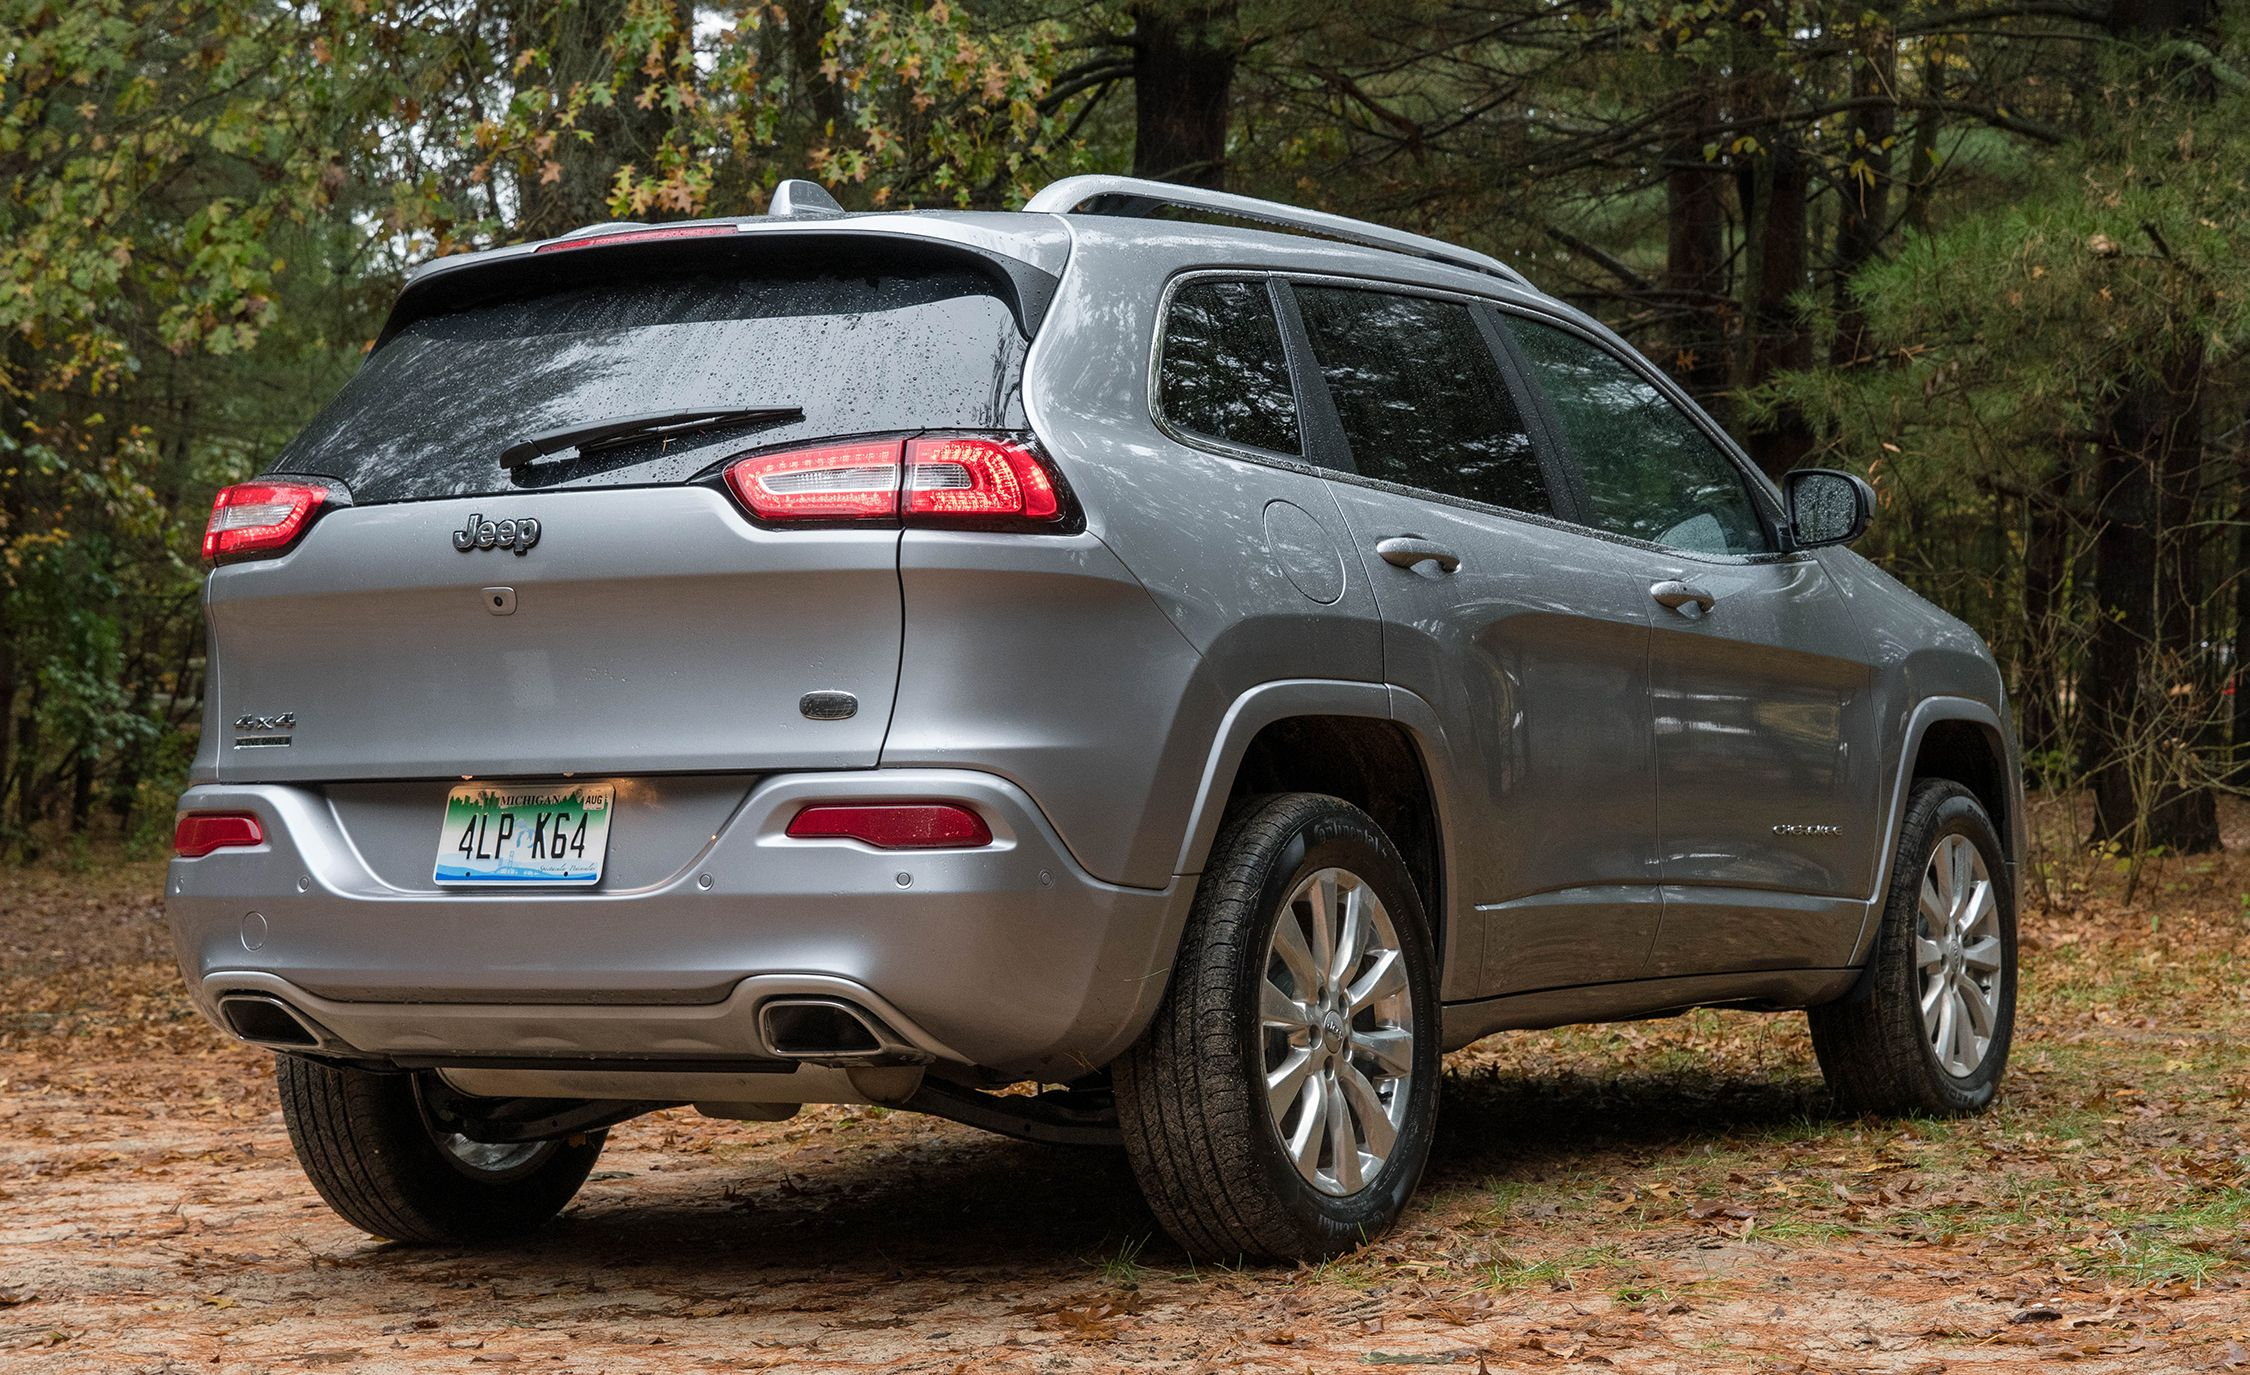 2017 jeep cherokee | in-depth model review | car and driver